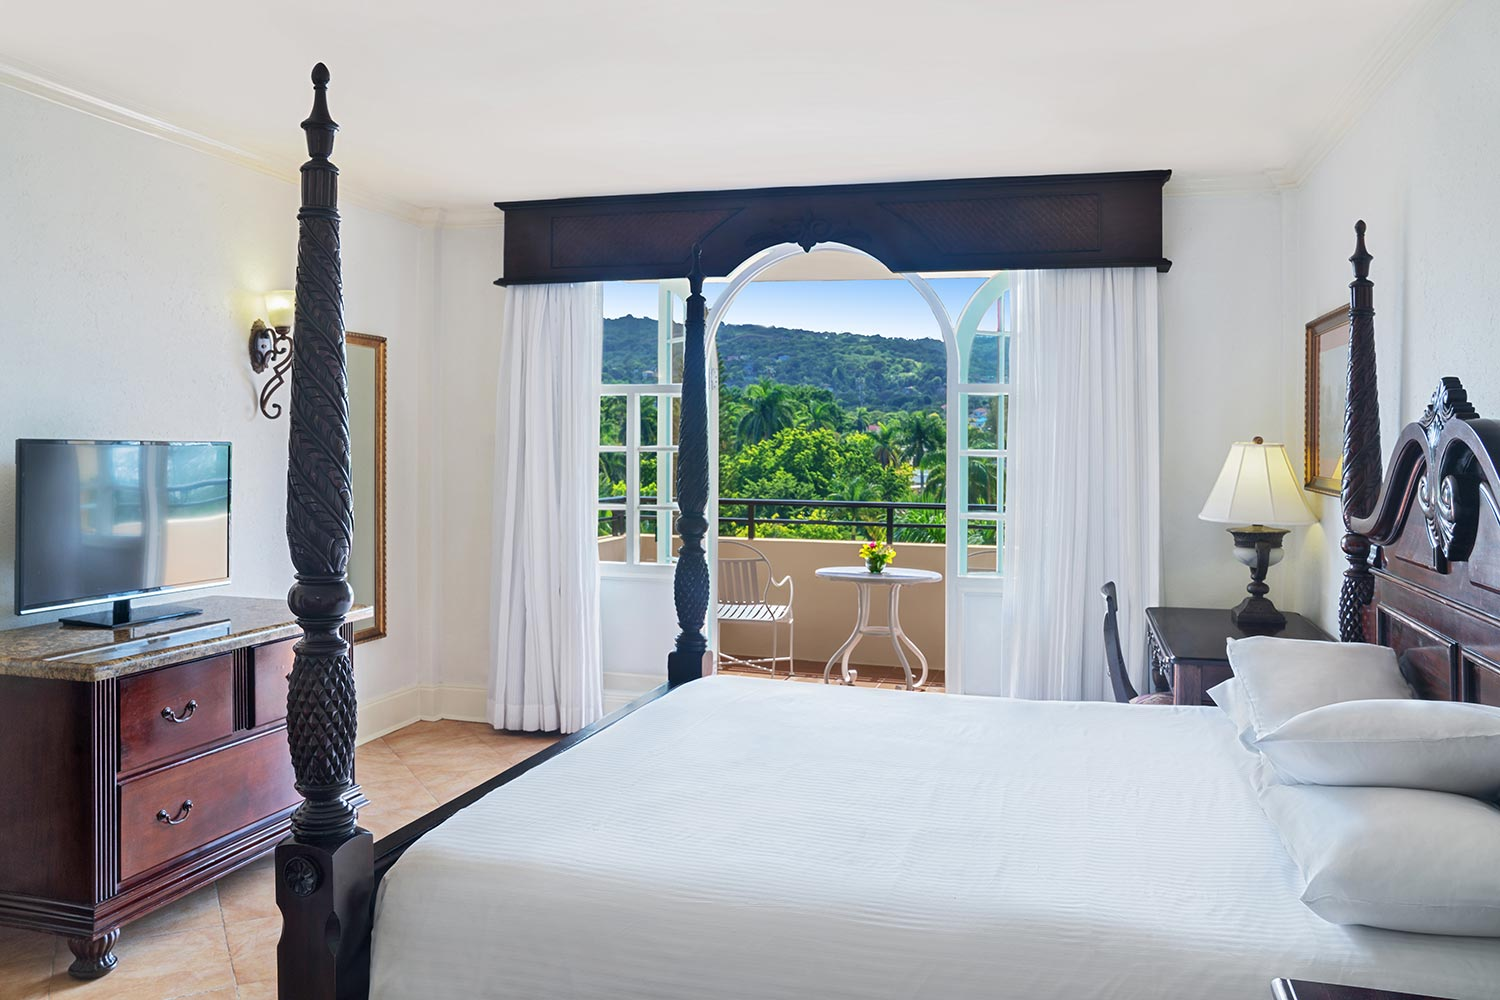 Sapphire Mountain View Guest Rooms  Starting at $230.00/per night, taxes and fees included